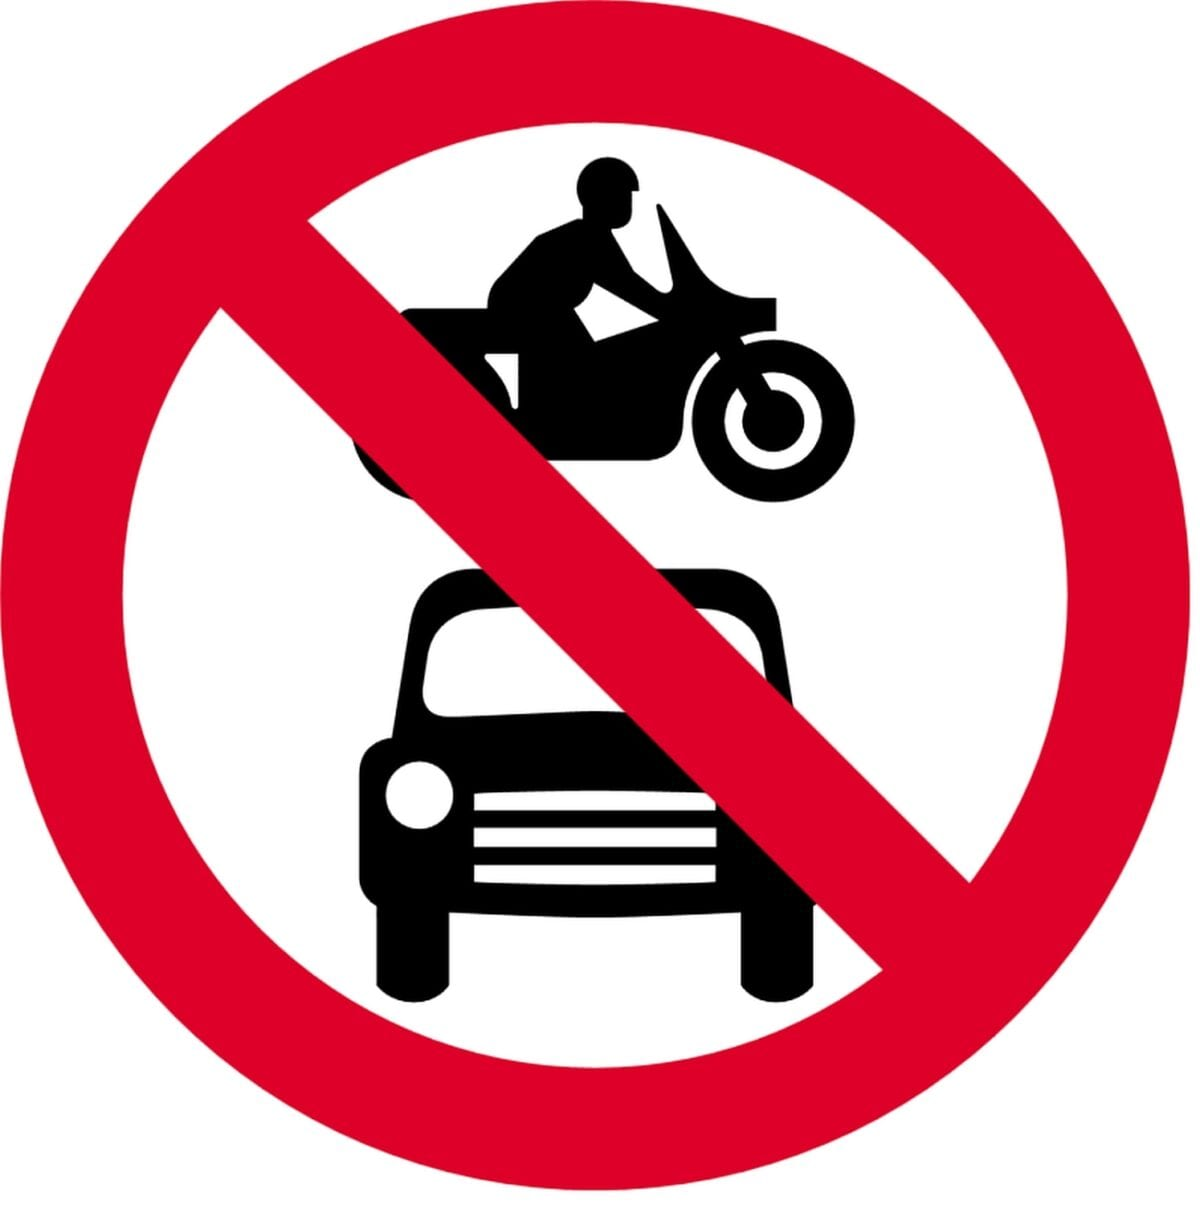 No Sign Of Knowledge 90 Of Road Users Find Road Signs Confusing On2wheels